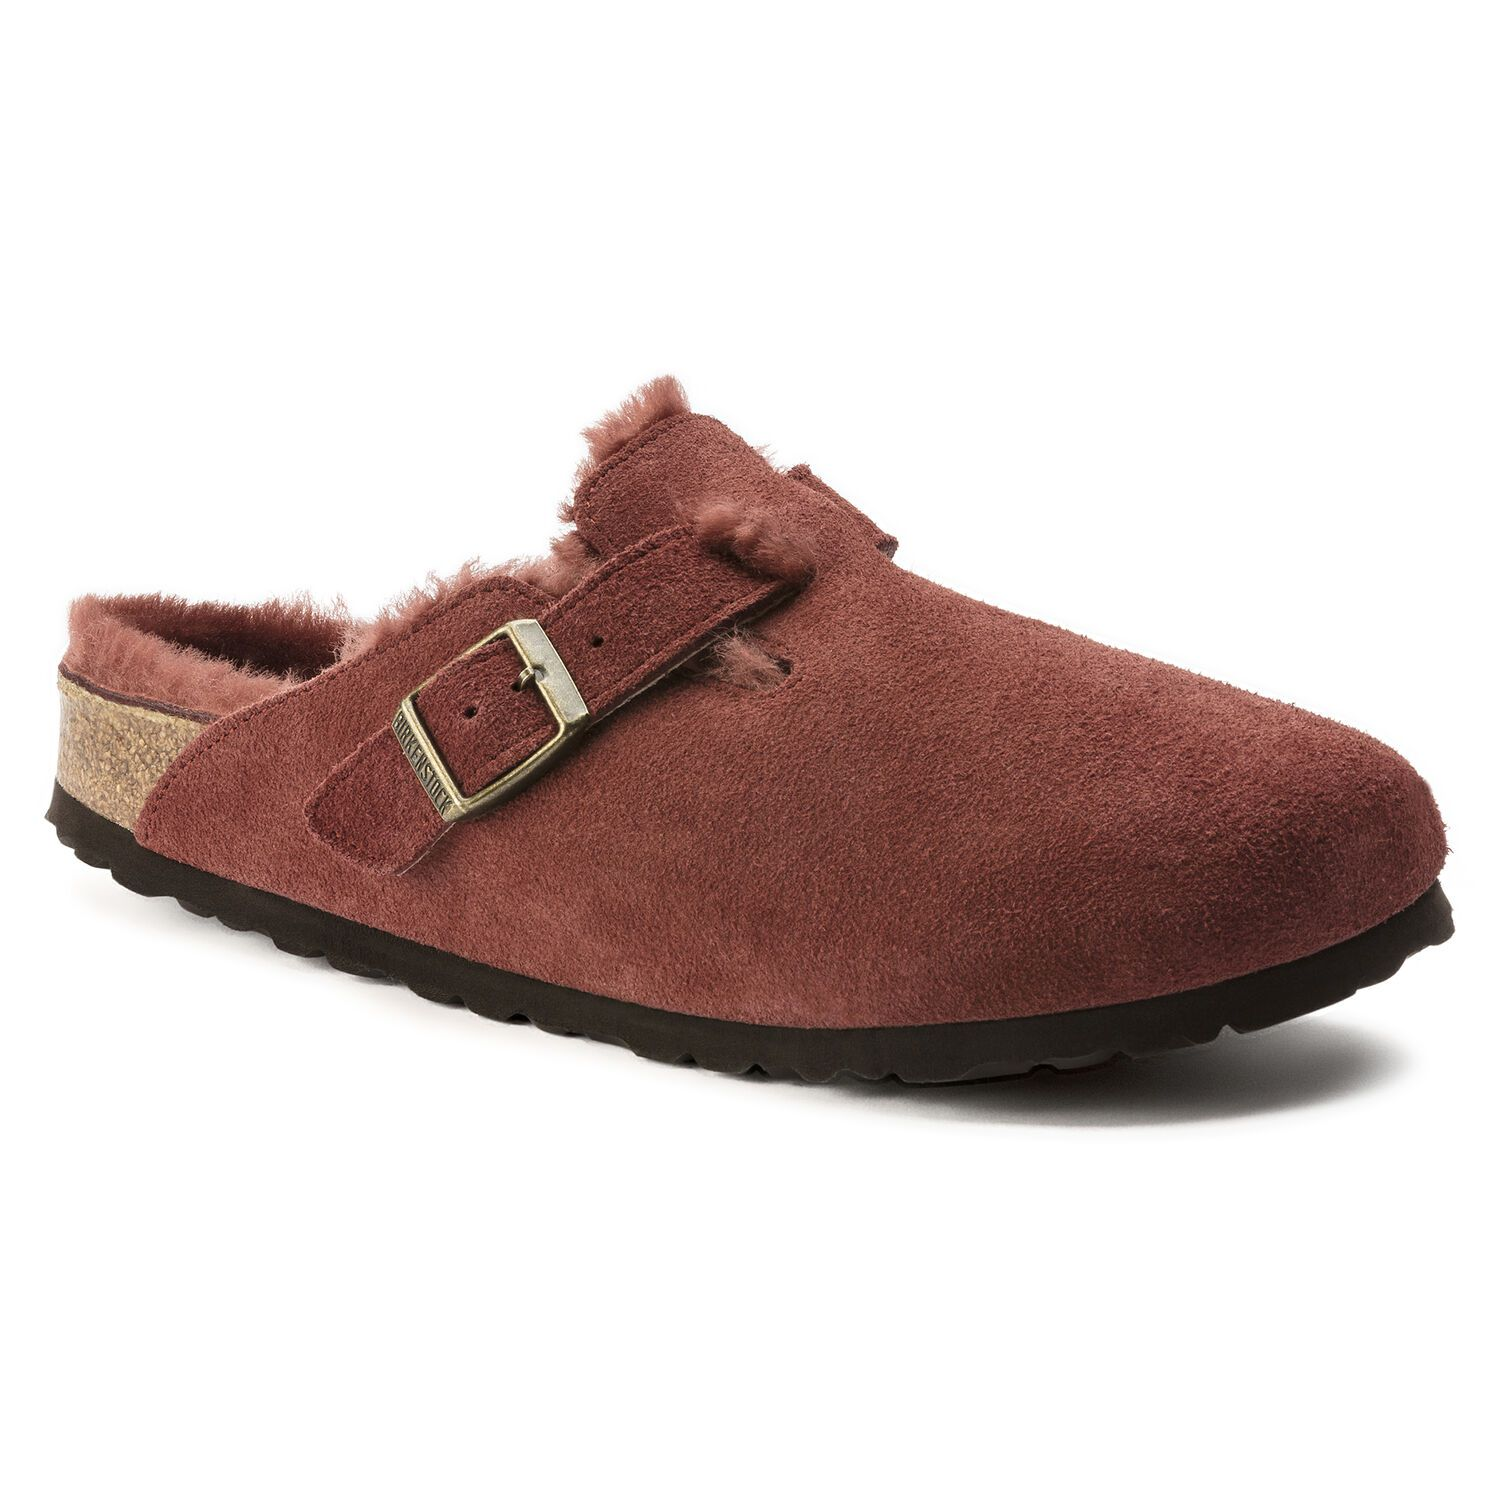 Birkenstock Clog Boston Vl Antique Port Lammfell Narrow EN